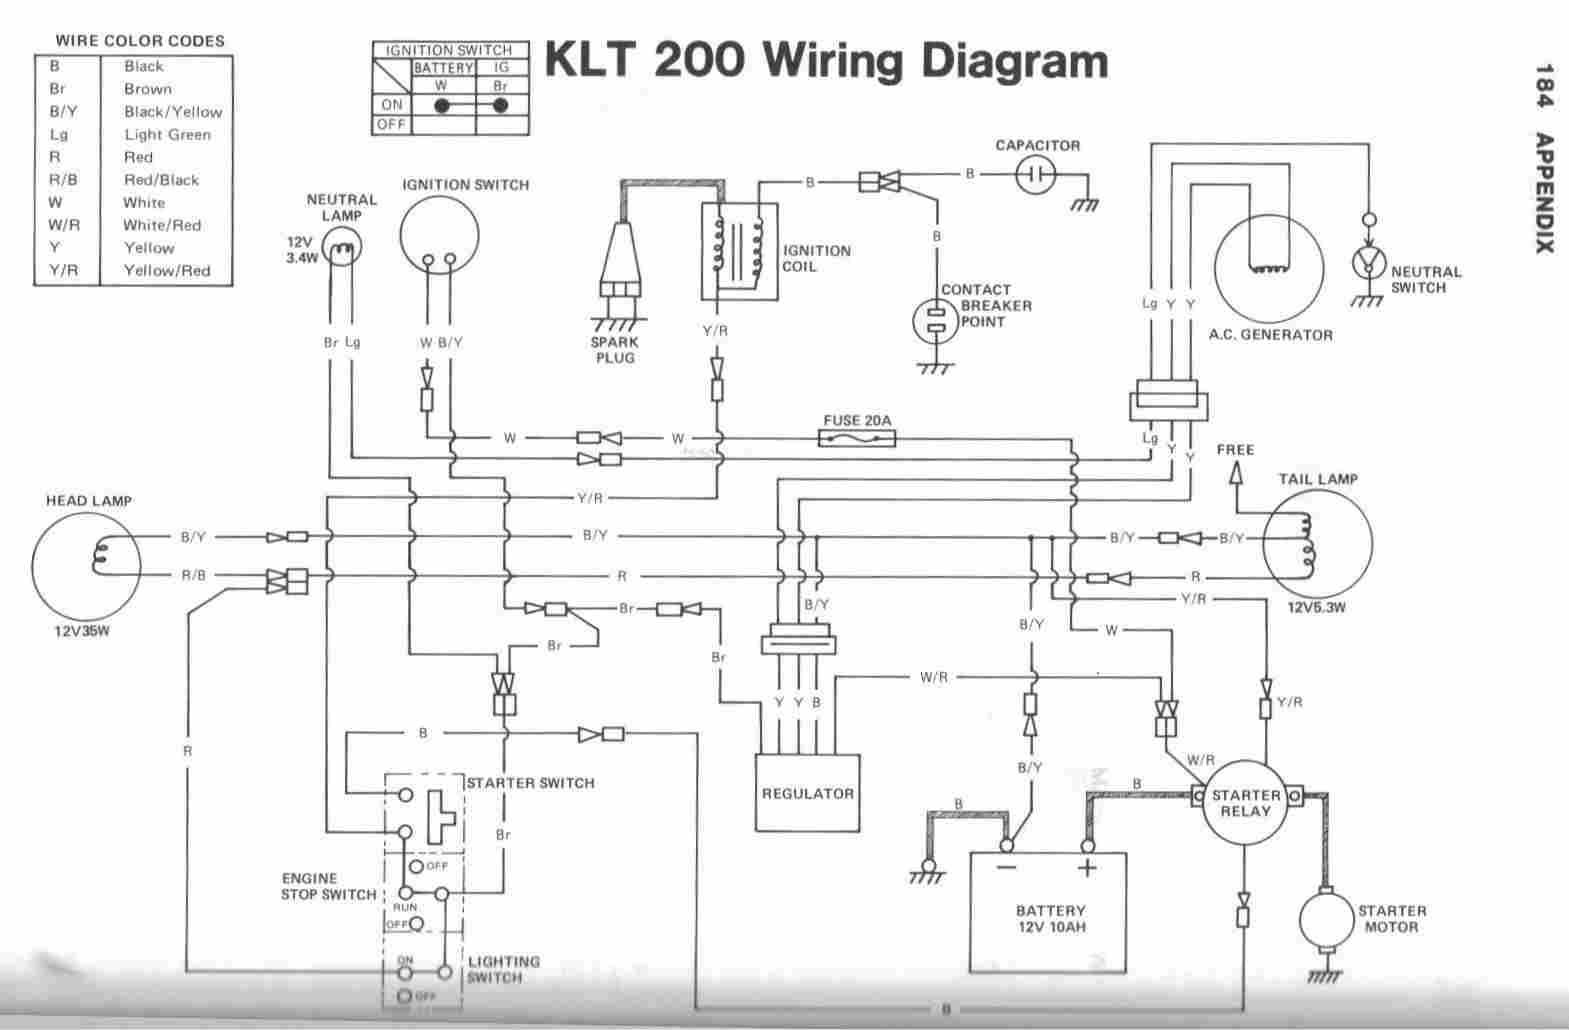 Residential Wiring Diagram Pdf : Residential electrical wiring diagrams pdf easy routing